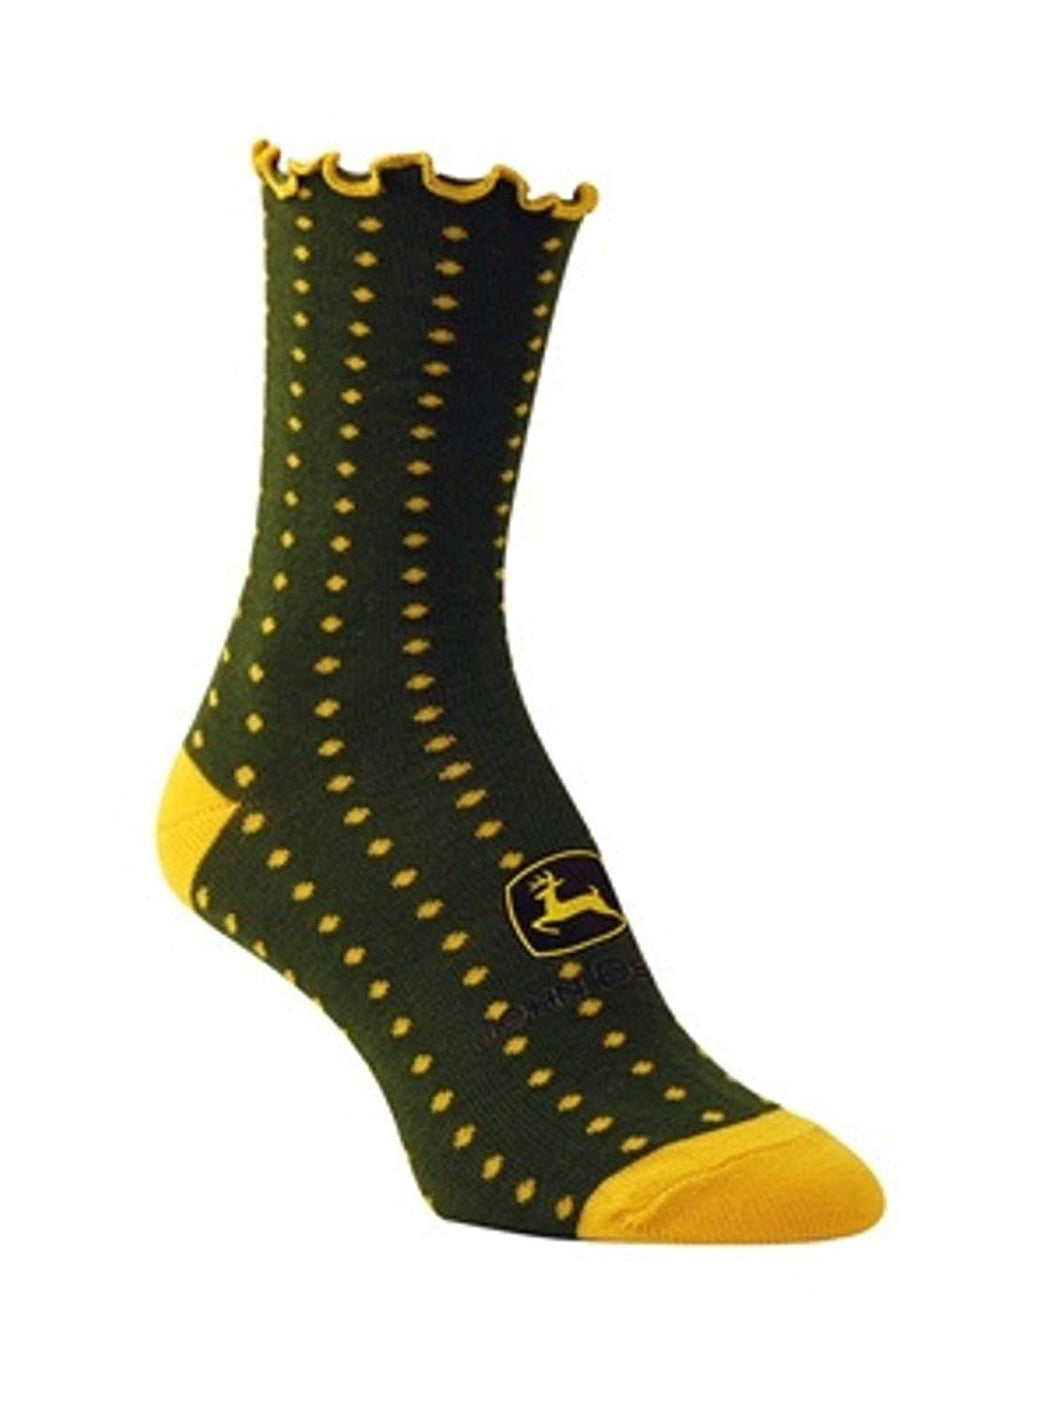 John Deere Ladies Polka Dot Socks Green - LP34476